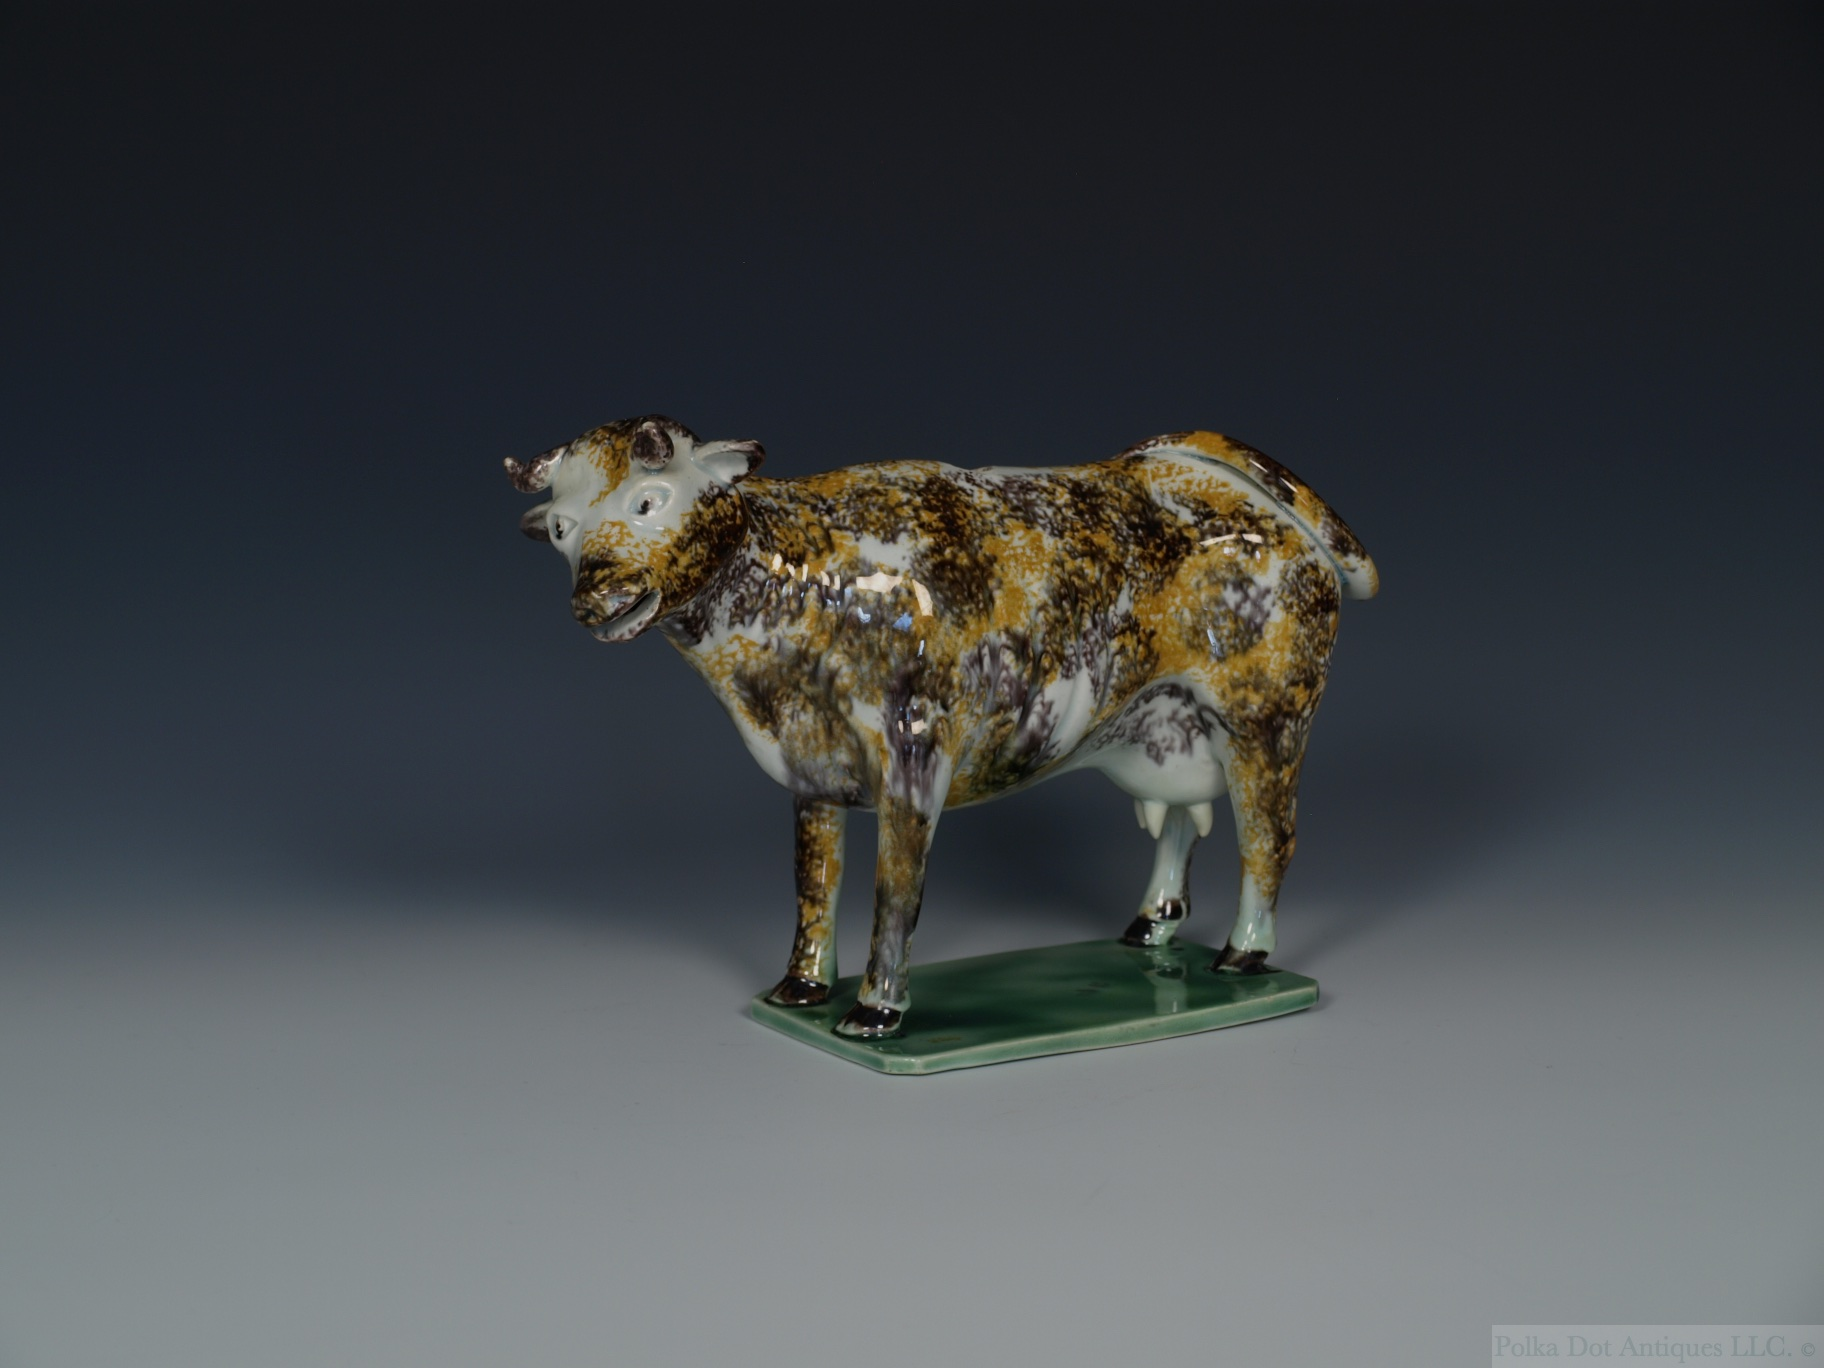 A Staffordshire Pearlware Cow Creamer, c.1800, sponged in ochre and manganese, lacking cover.